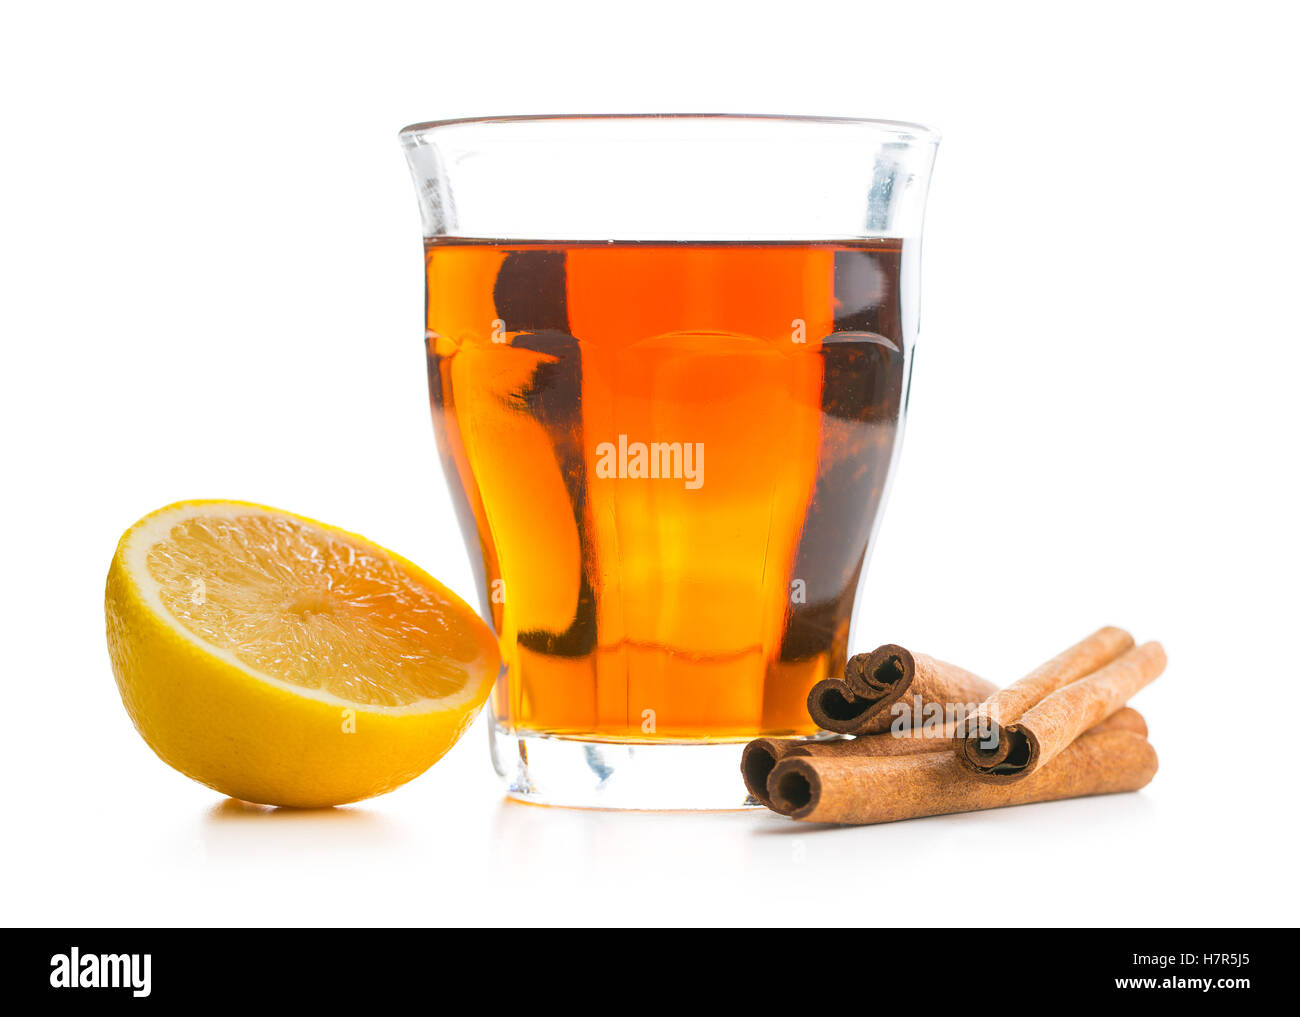 Tea in glass cup, lemon and cinnamon sticks isolated on white background. Stock Photo